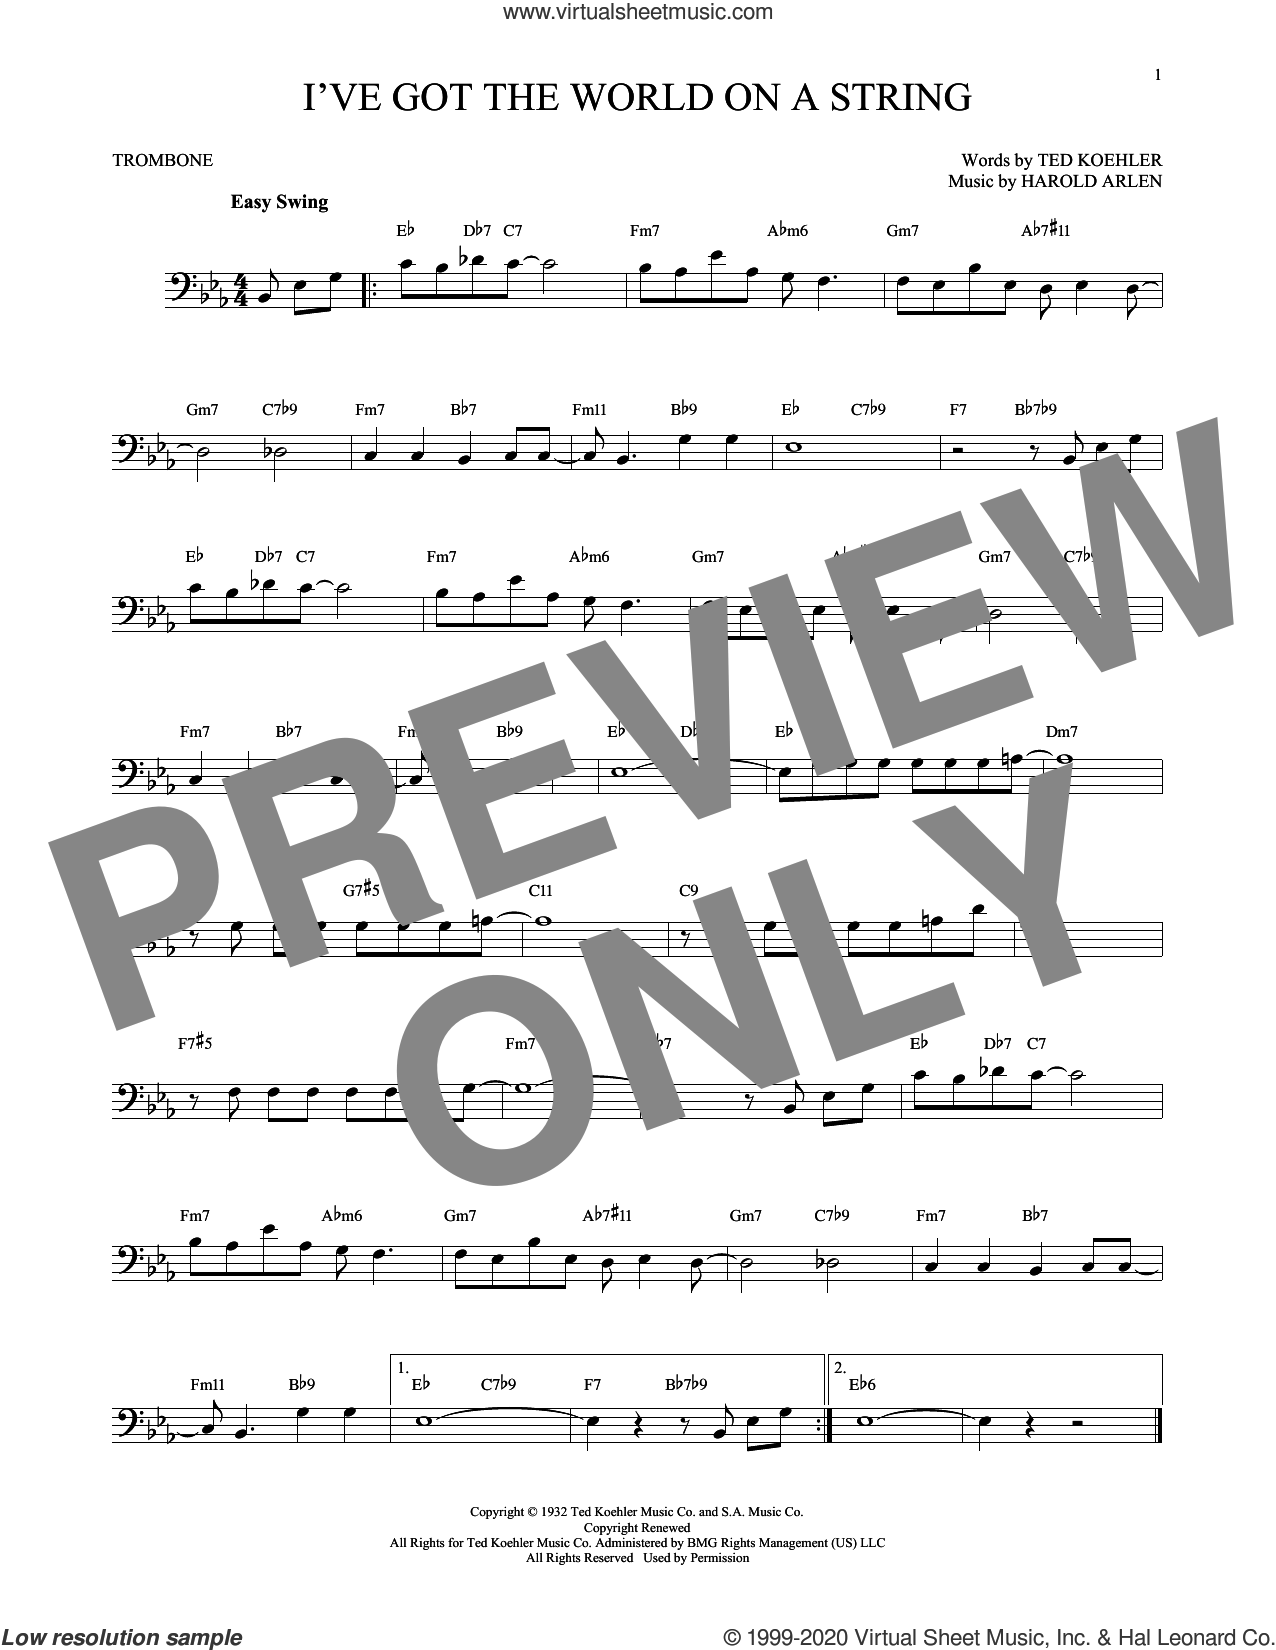 I've Got The World On A String sheet music for trombone solo by Harold Arlen, Dick Hyman and Ted Koehler, intermediate skill level